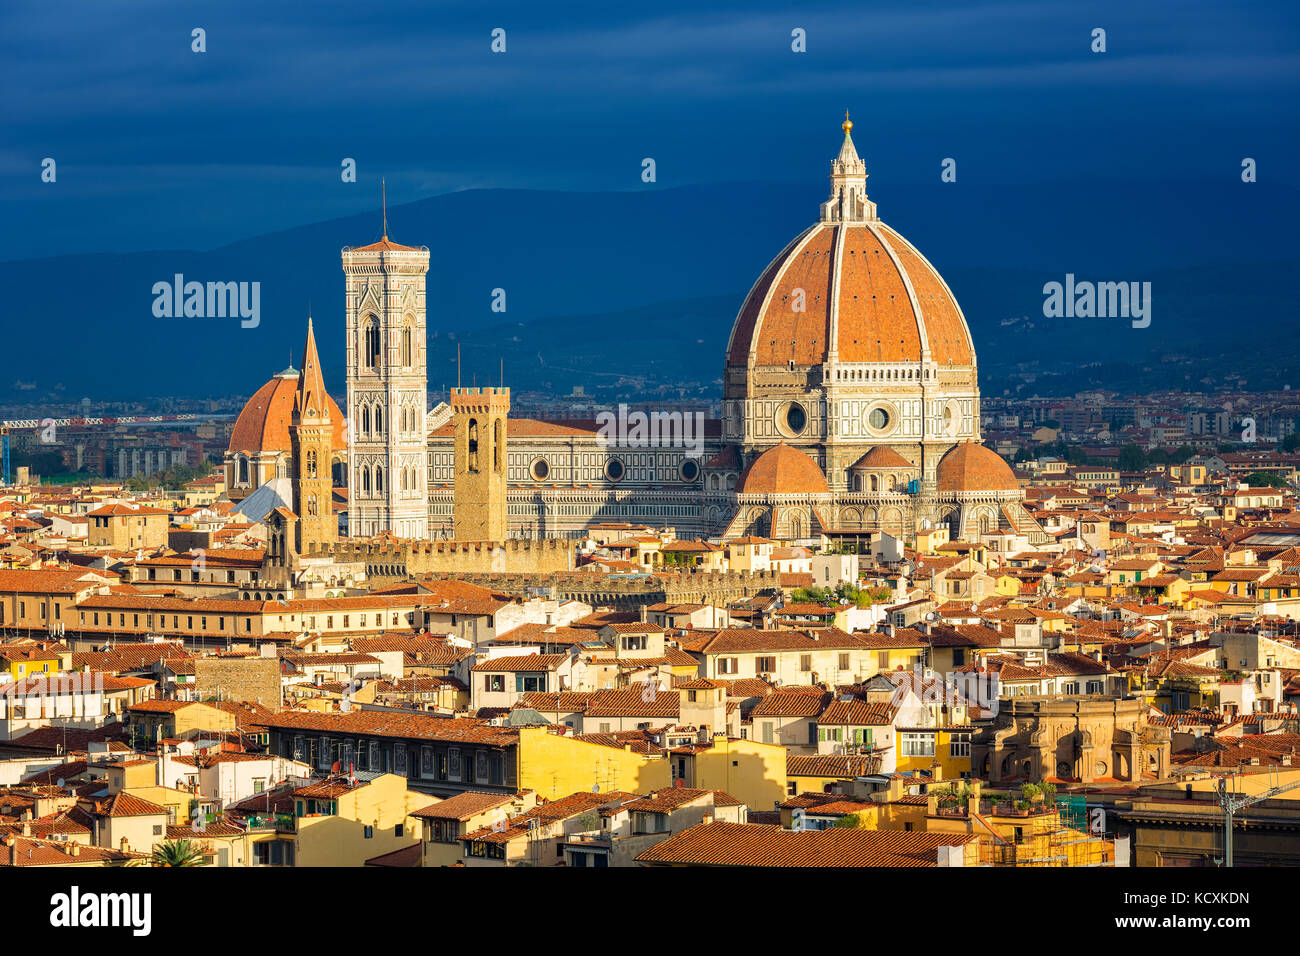 Duomo cathedral in Florence - Stock Image